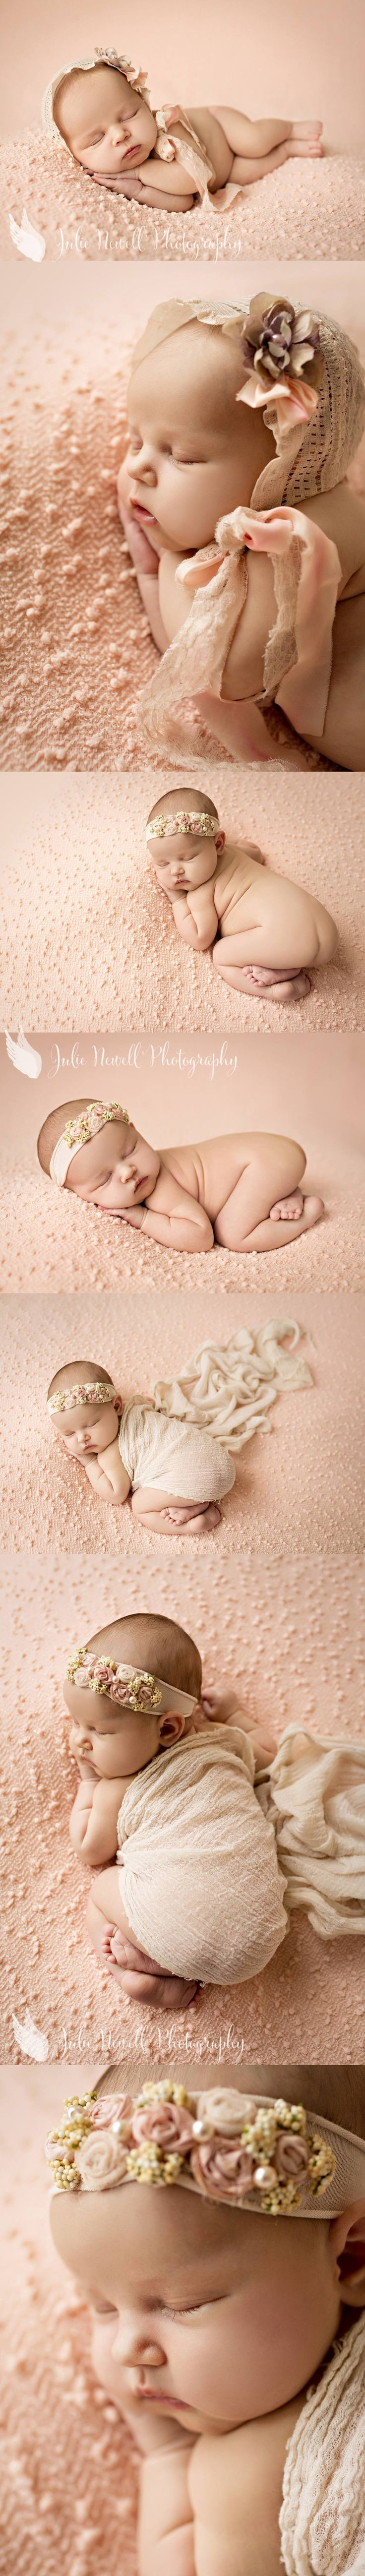 Her little bonnet and headband are so sweet (and a bit vintage), and the peach colored blanket brings out such beautiful tones in her skin.